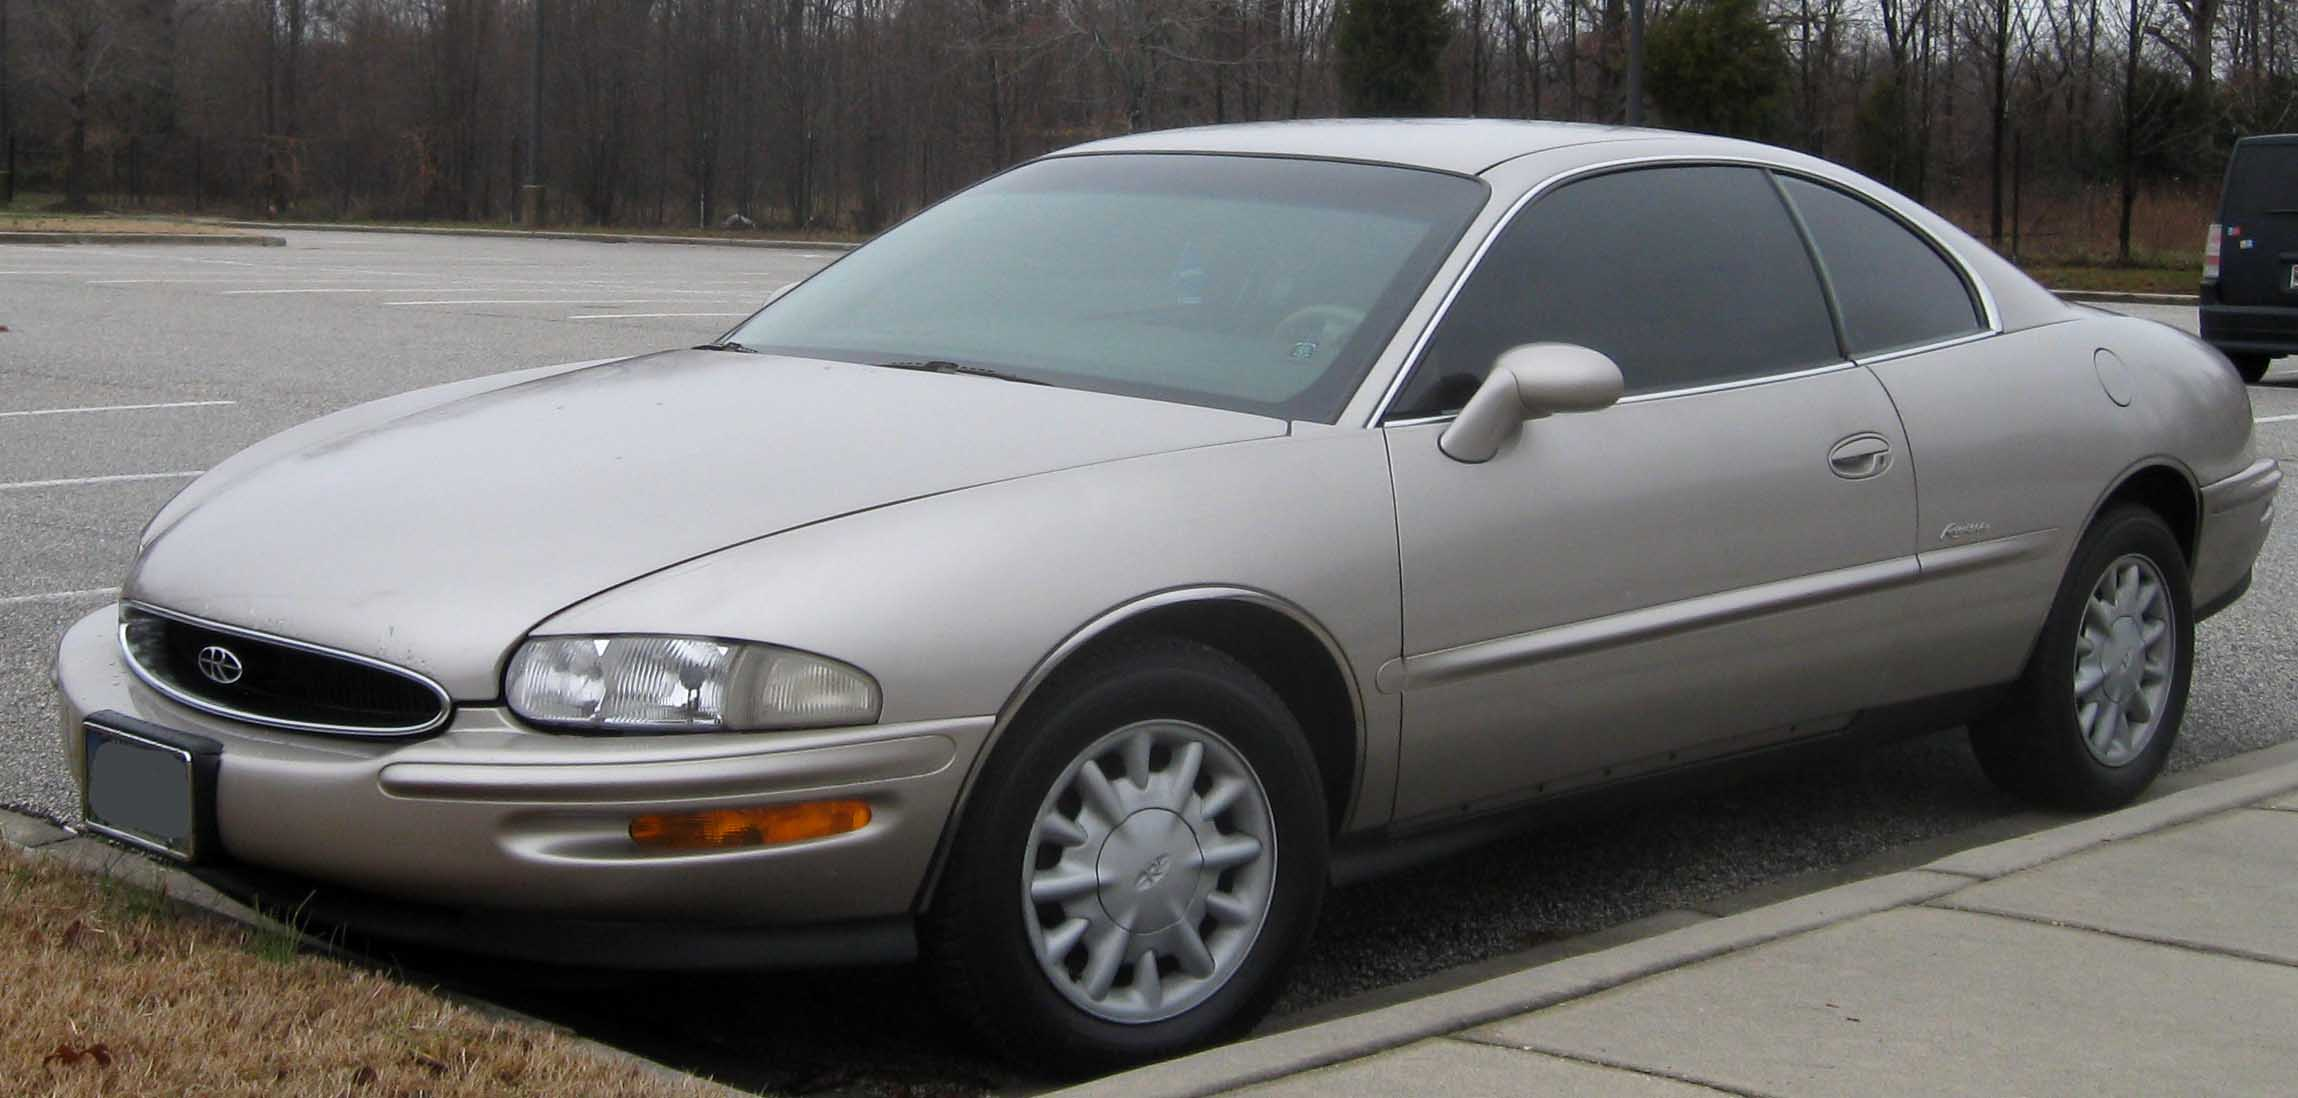 File:1995-1999 Buick Riviera.jpg - Wikipedia, the free encyclopedia